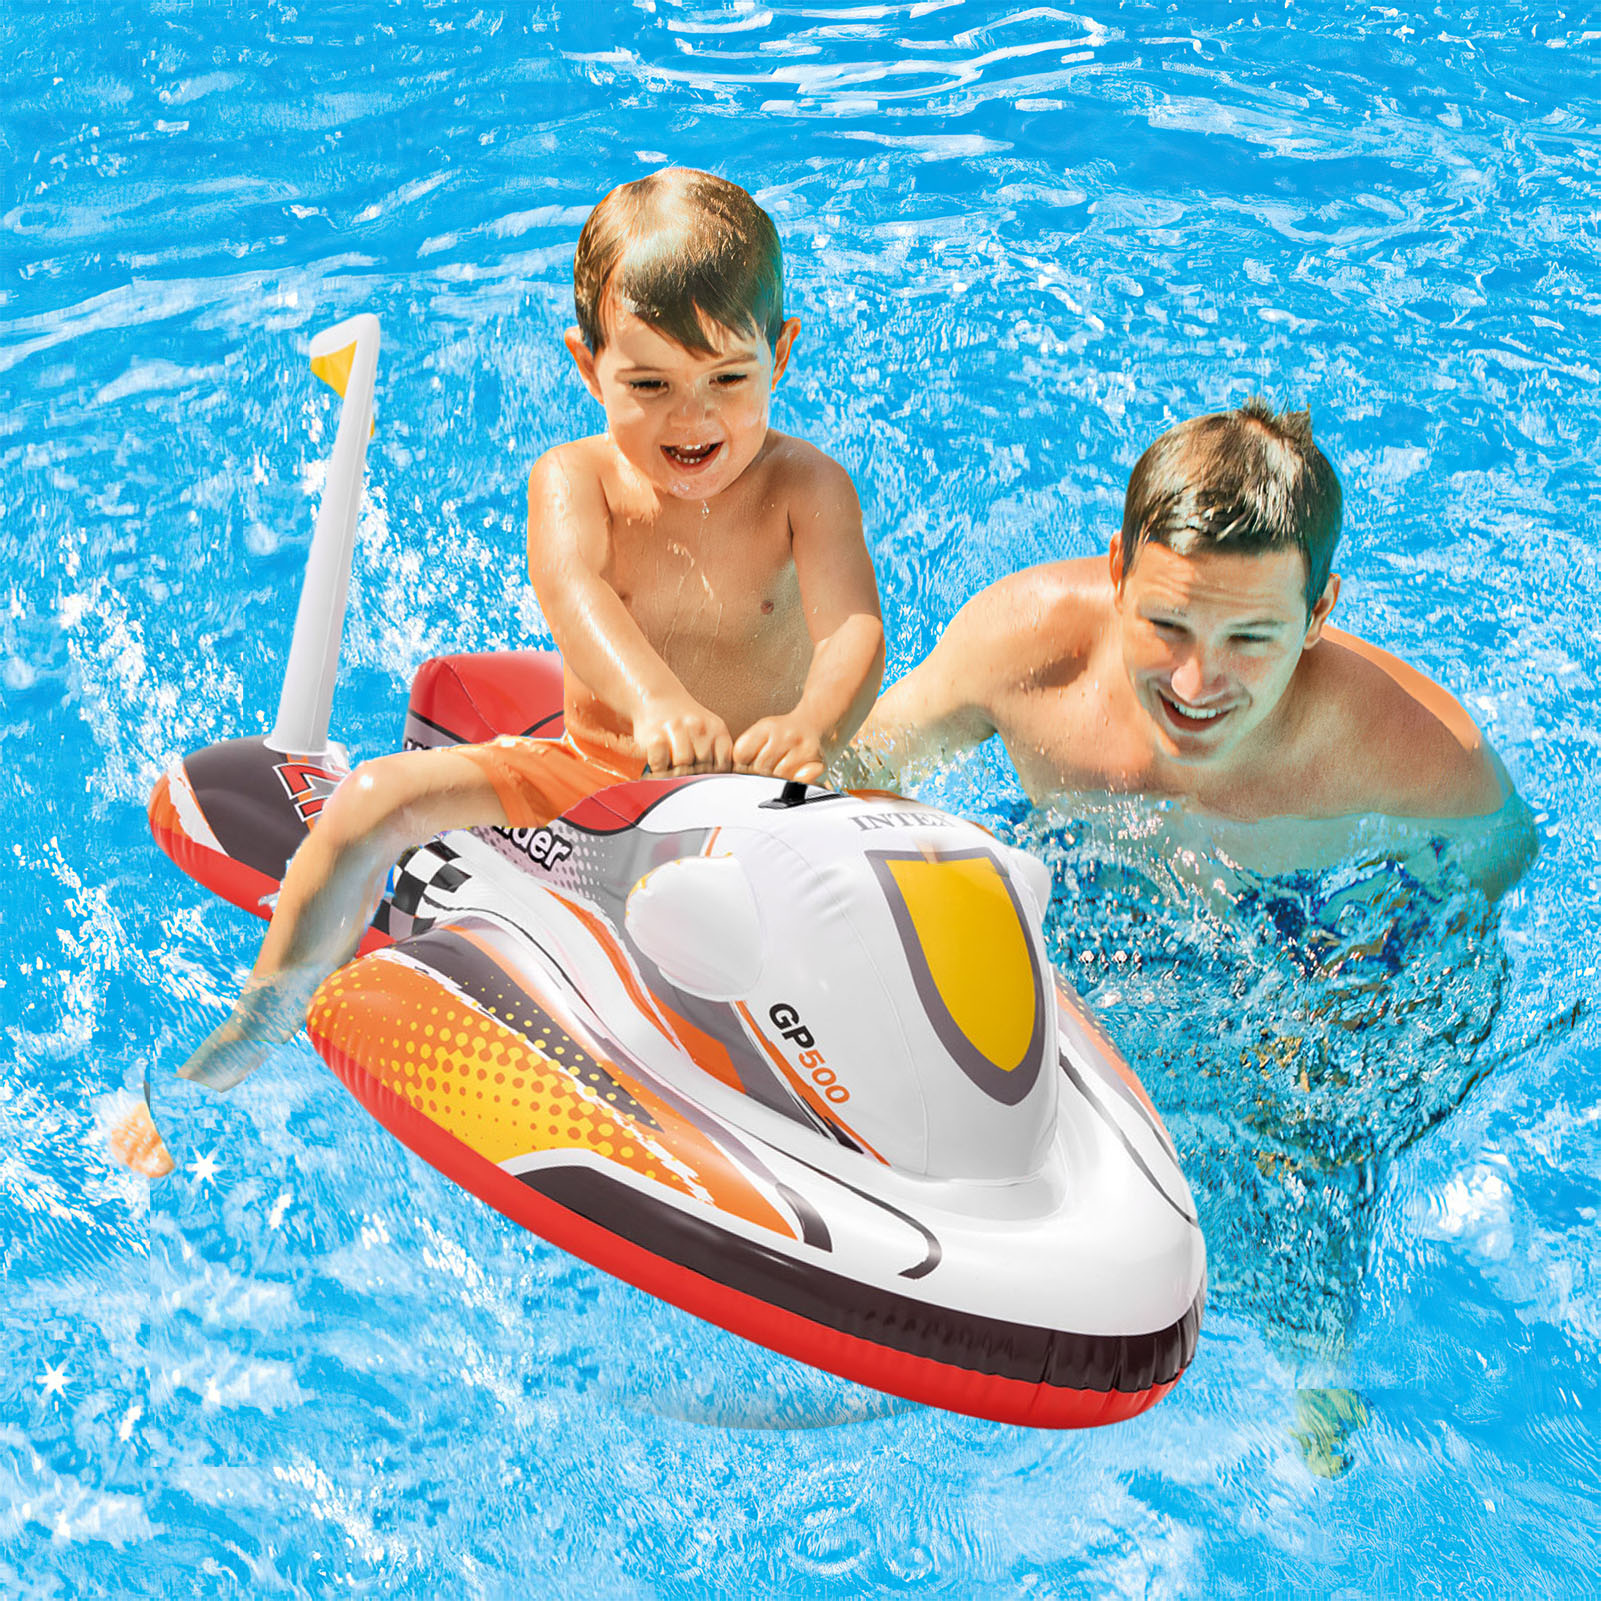 Inflatable Swimming Pool Float For Kids PVC Swimming Rubber Boat Model Summer Beach Floating Toys Play Water Pool Seat